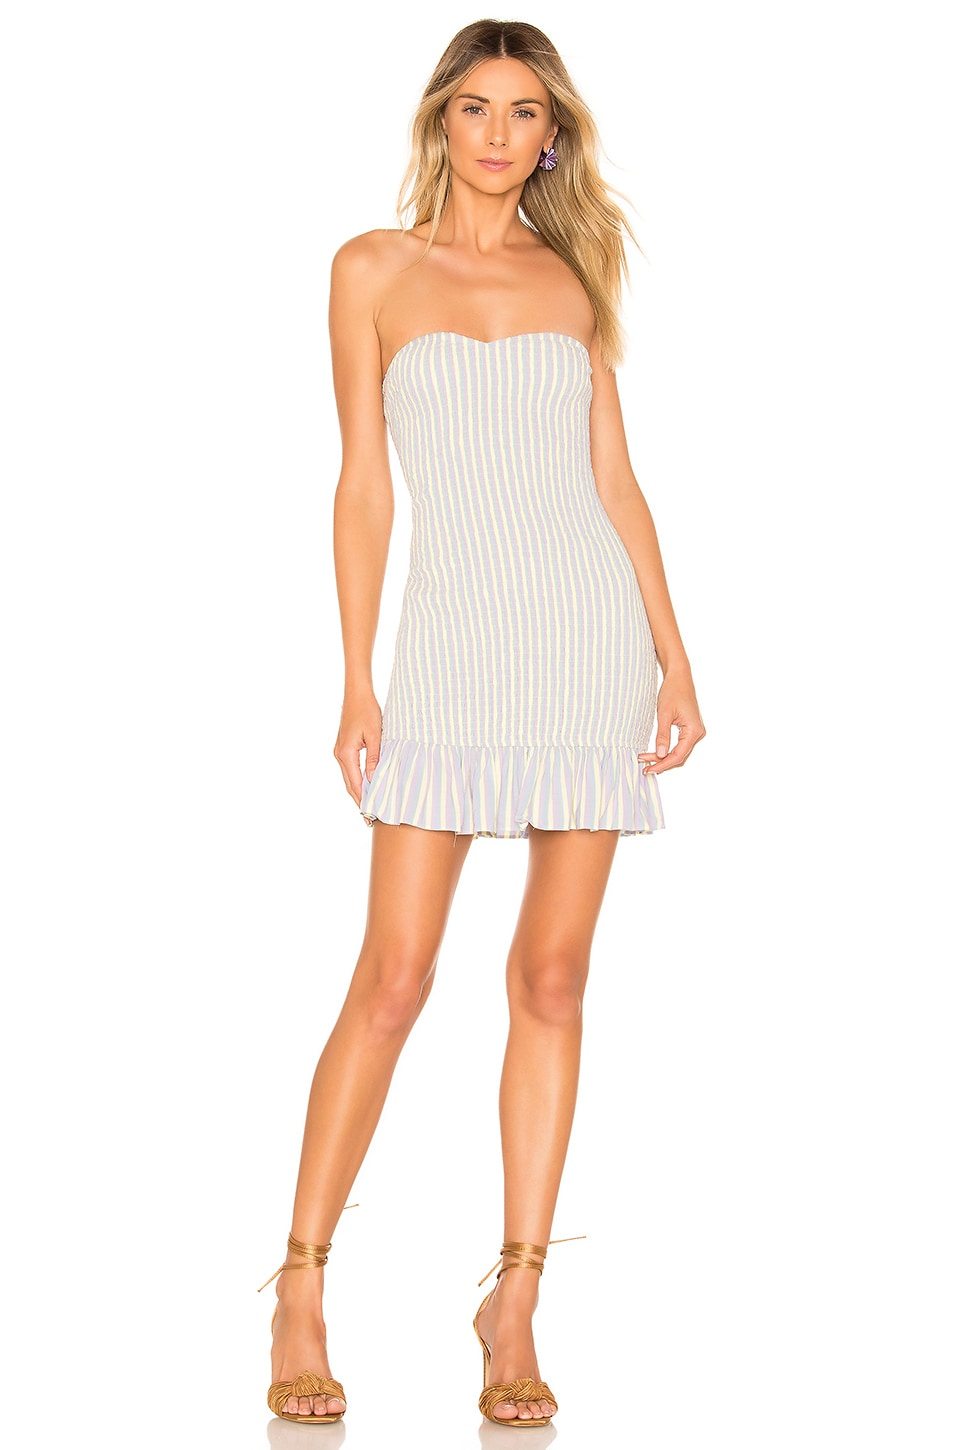 Lovers + Friends Piper Mini Dress in Springtime Lavender